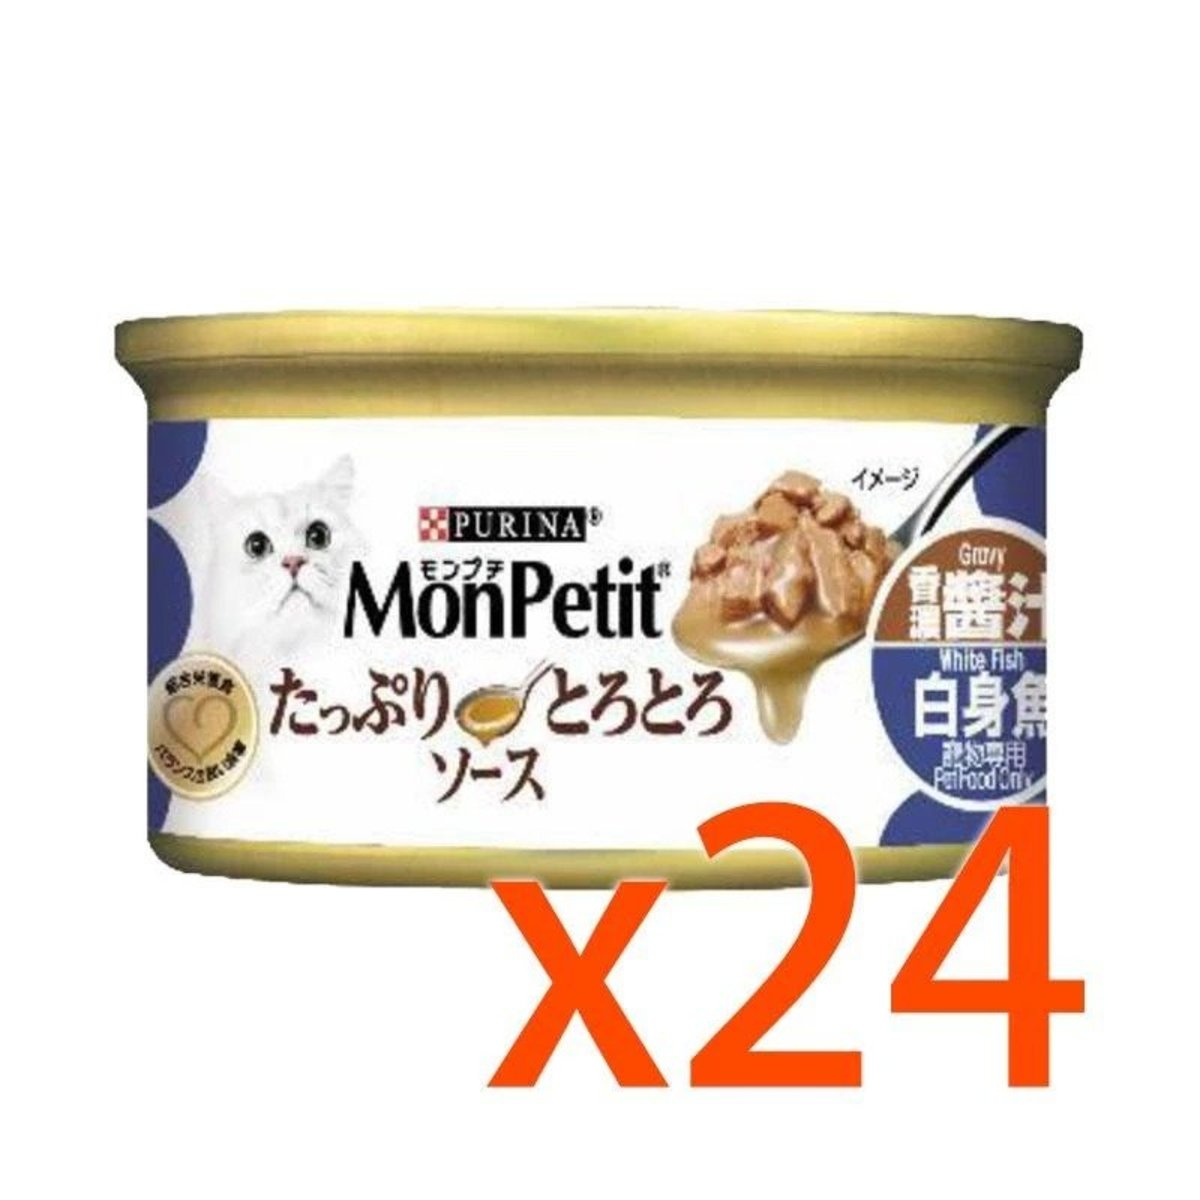 MonPetit Extreme Series Canned 85g - 24 cans / 醬煮白身魚及吞拿魚